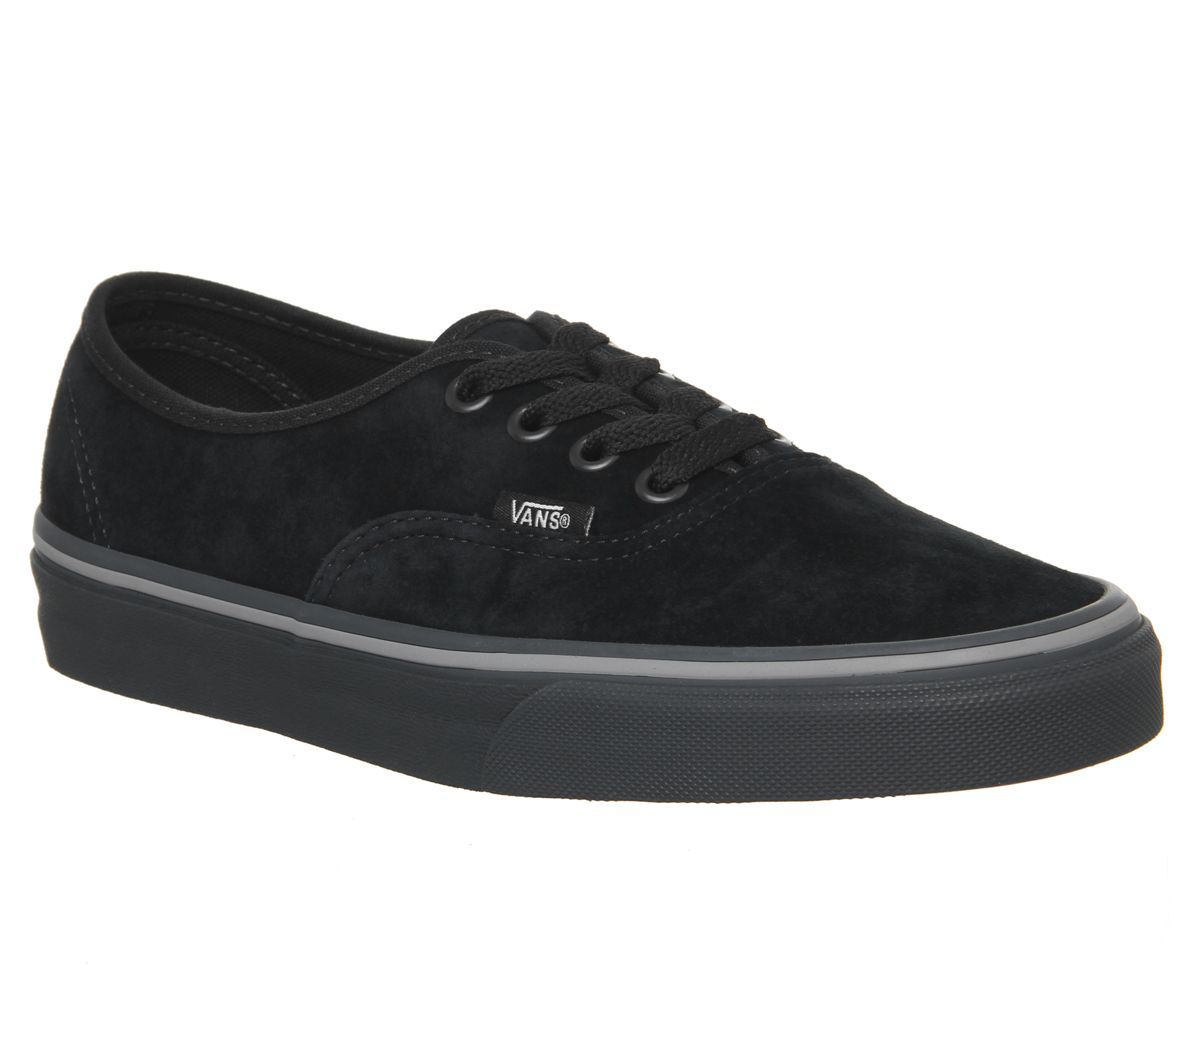 31f4aac19185bc Vans Authentic Trainers Pirate Black Frost Grey - Unisex Sports